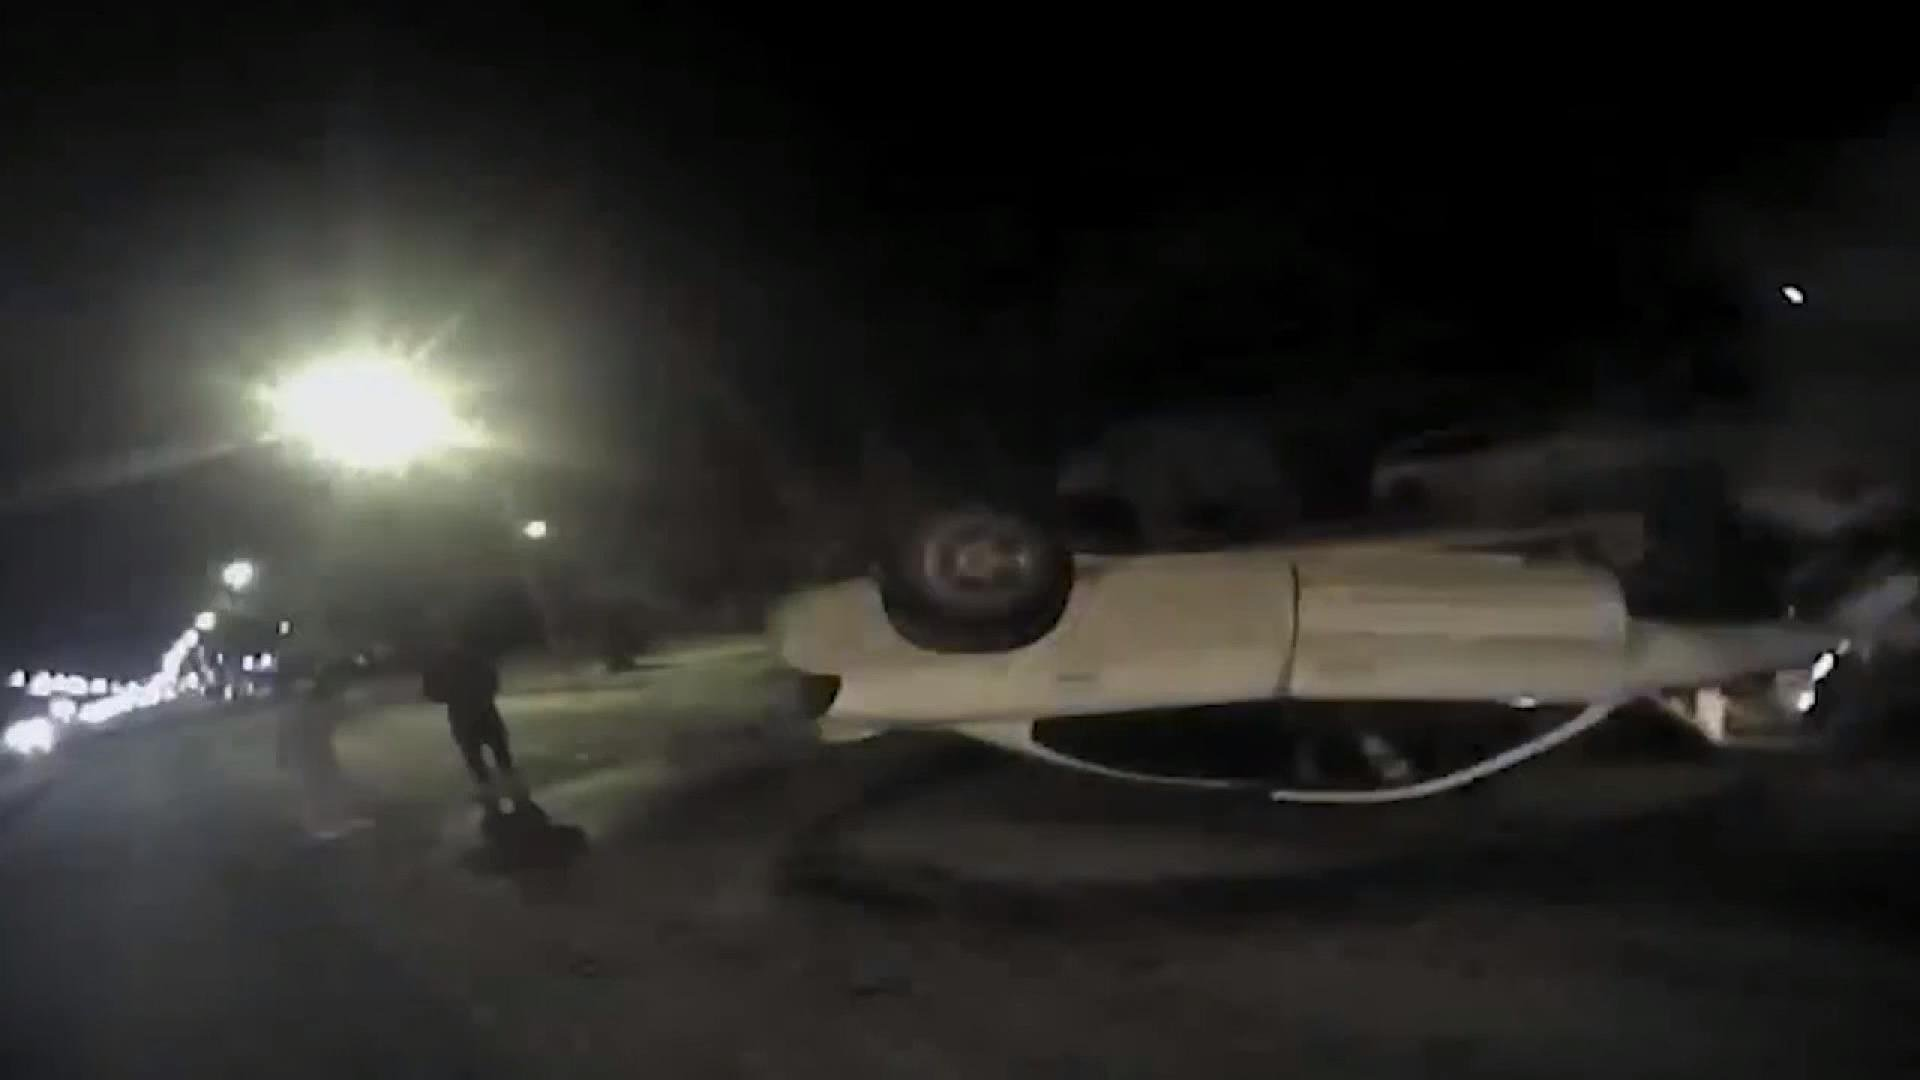 Video shows officers risking their lives to save teens from burning auto